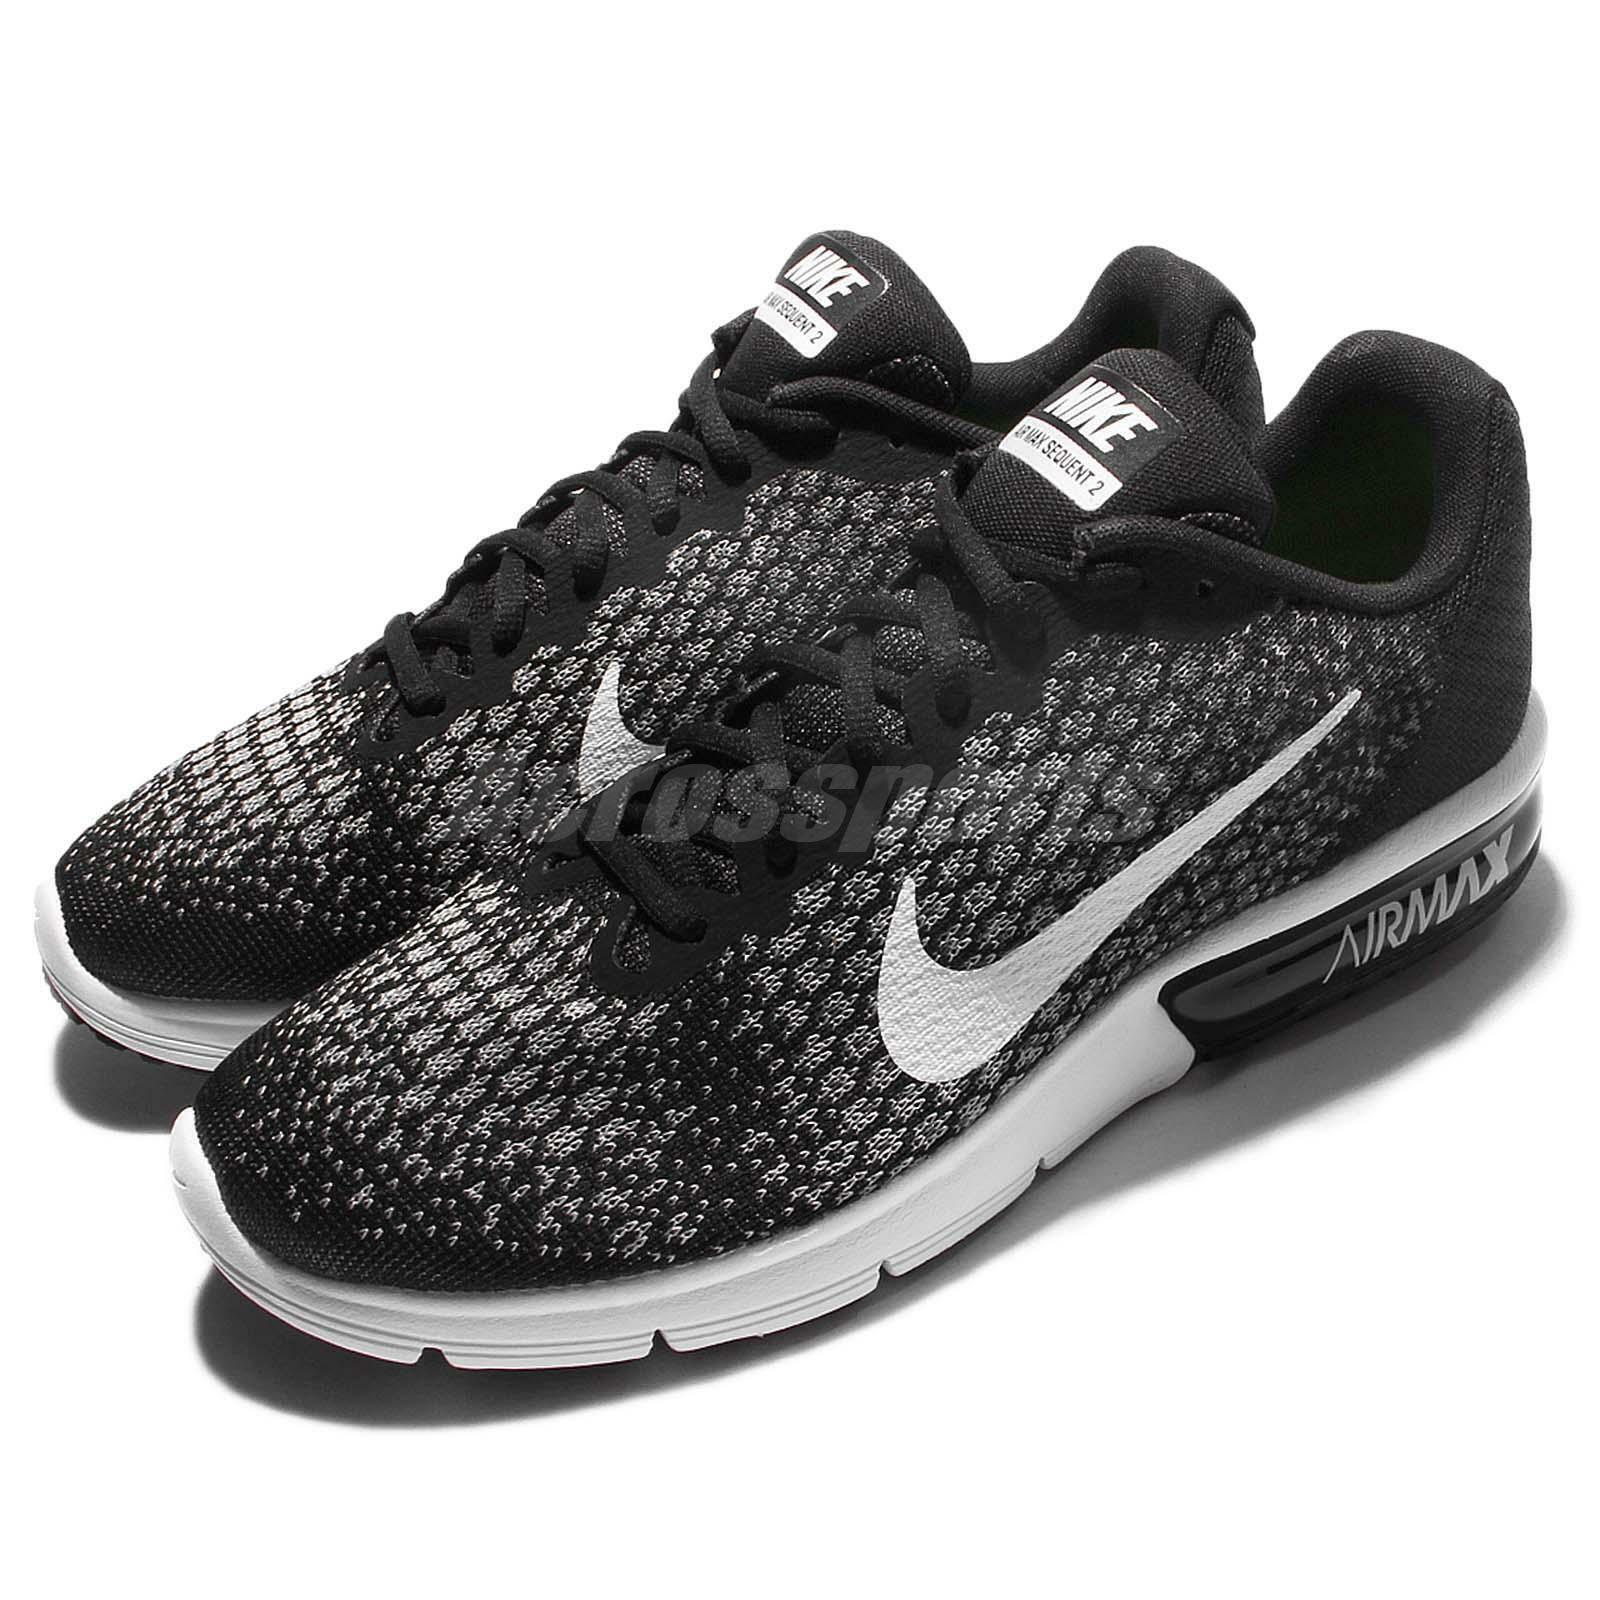 Nike Air Max Sequent 2 II Black White Men Running shoes Sneakers 852461-005